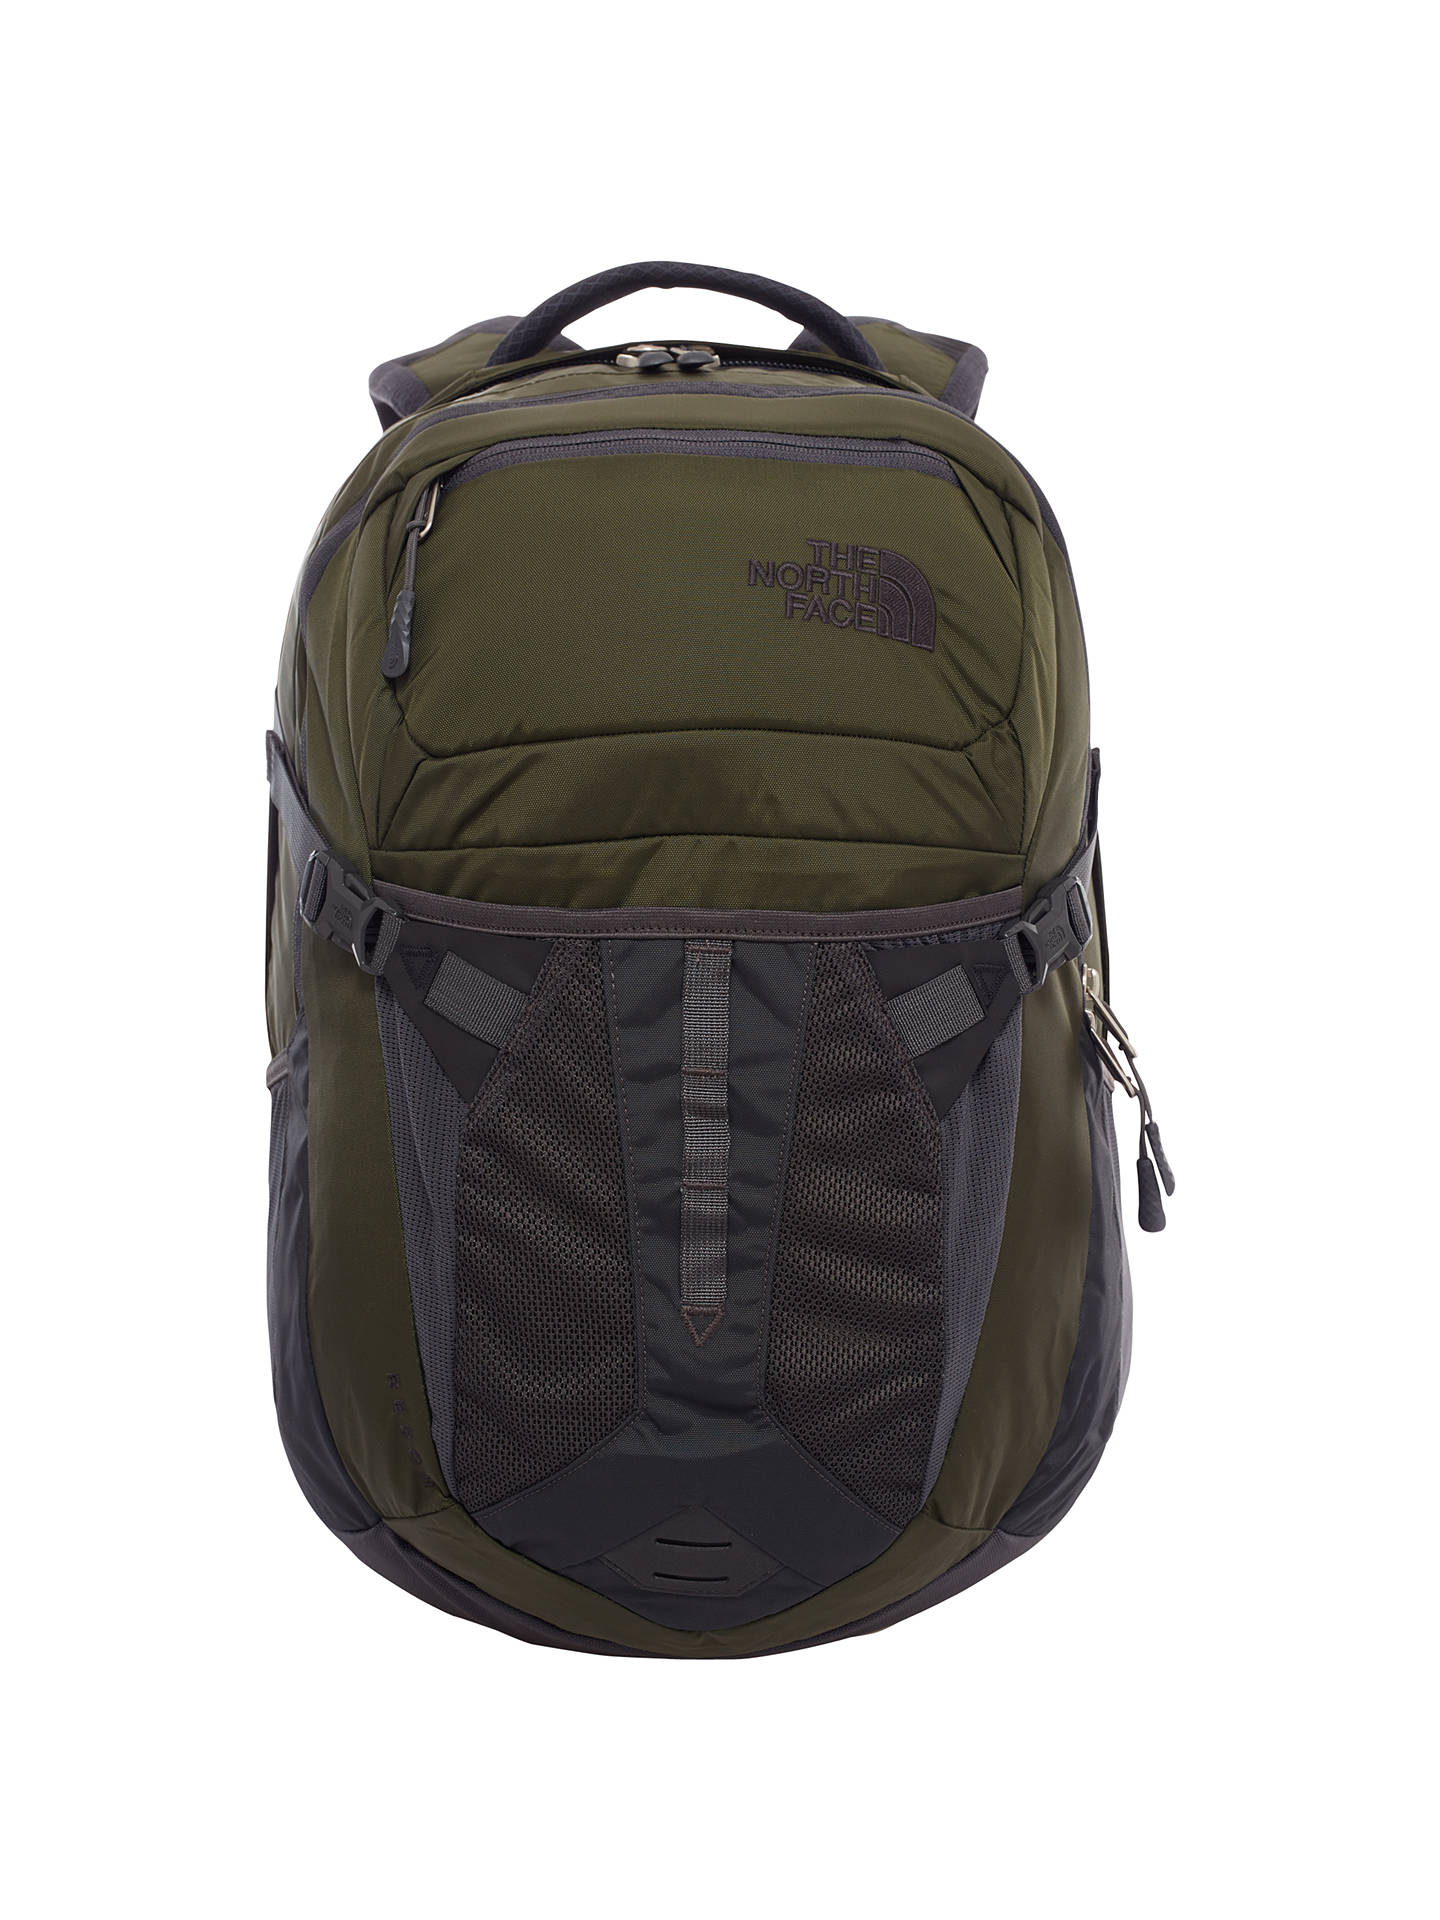 eda9d55e1 The North Face Recon Backpack, Blue/Grey at John Lewis & Partners